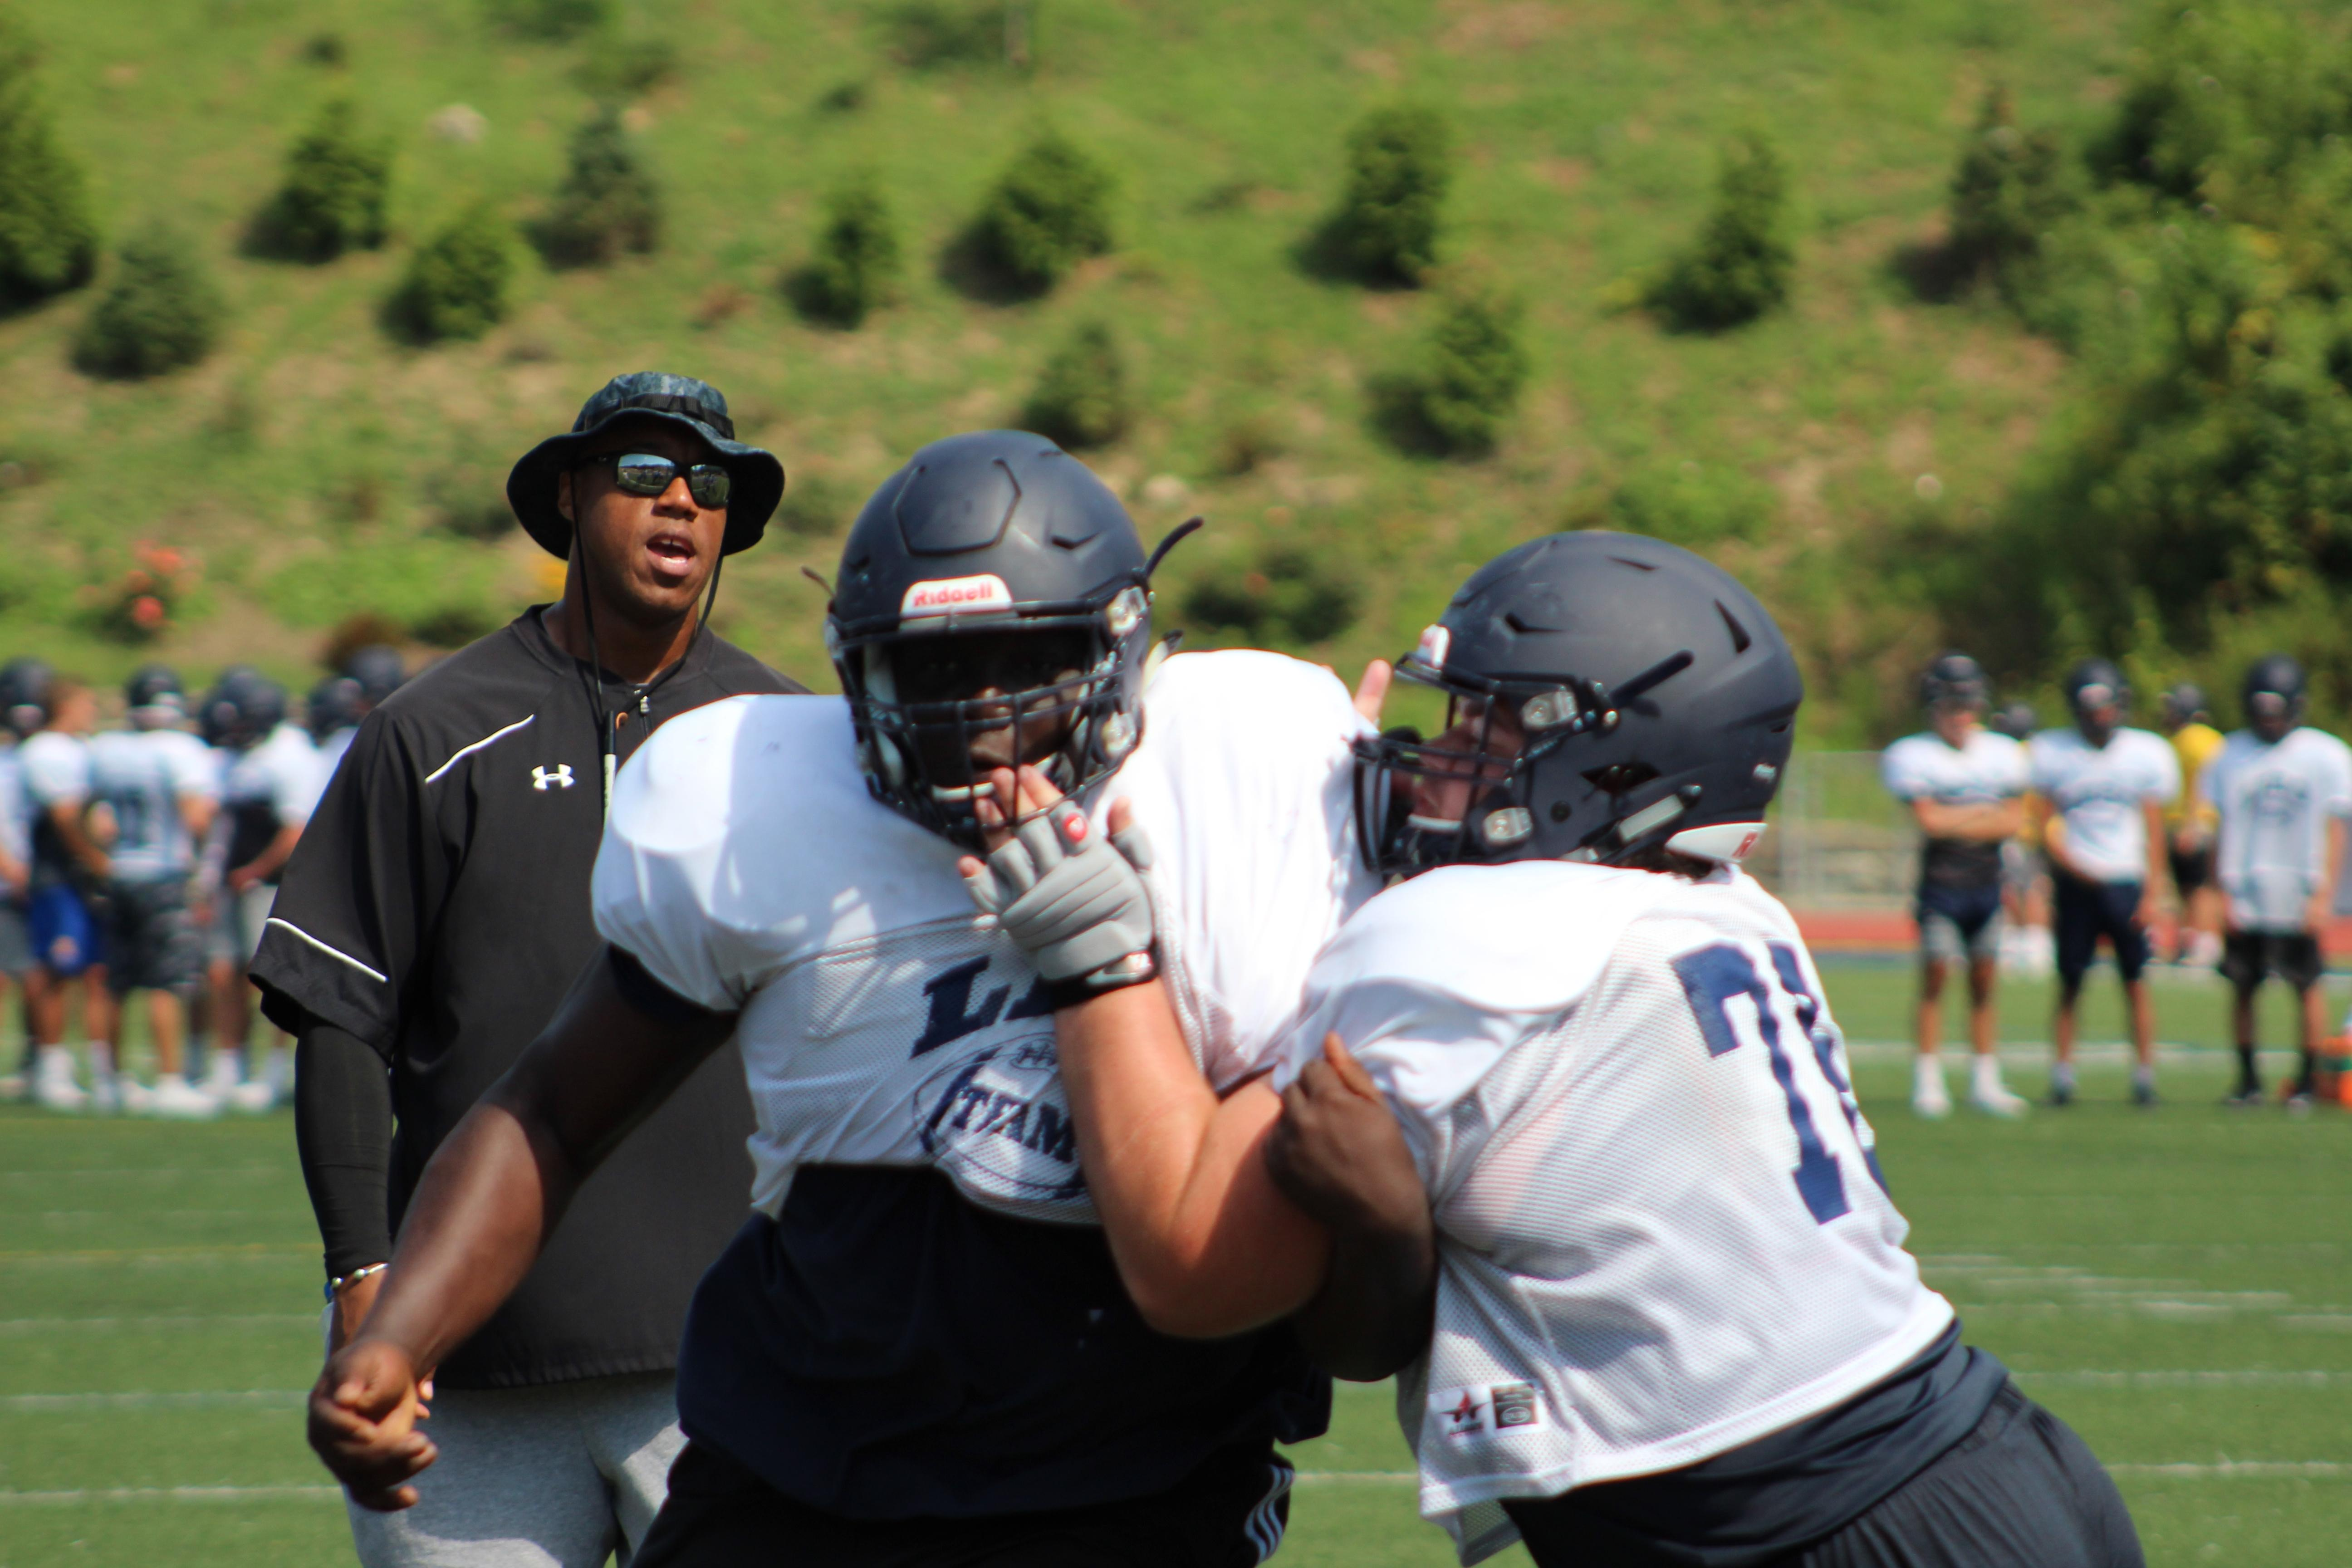 "With former Clarion University and NFL lineman Reggie Wells looking on, Mount Lebanon's J.B. Nelson fights through a block. Wells serves as an assistant coach on the Mount Lebanon staff. Watch the AHN Friday Night Rivals powered by IGS Energy ""Kickoff Special"" Aug. 23 at 7 p.m. on 22 the Point."